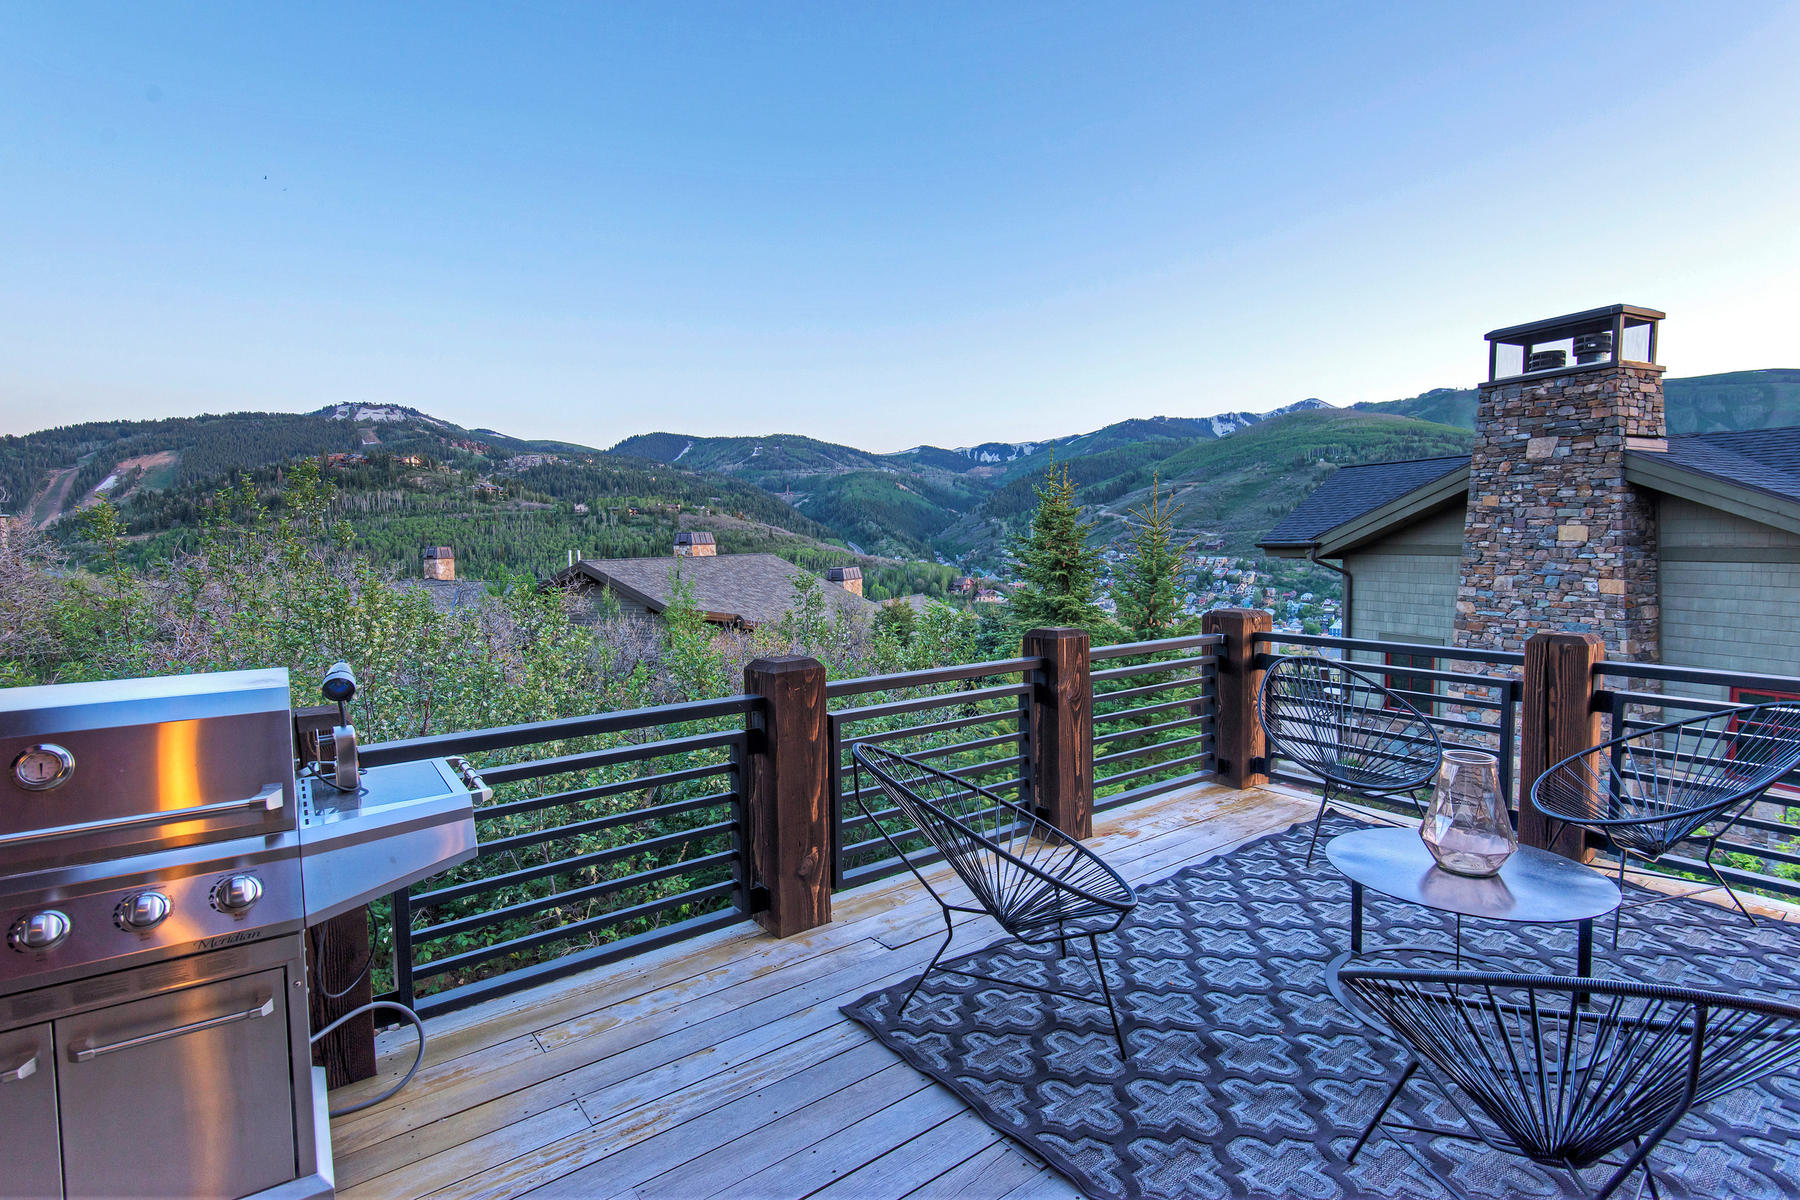 Additional photo for property listing at Fresh Mountain Modern with Incredible Views 1468 April Mountain Dr Park City, Utah 84060 United States